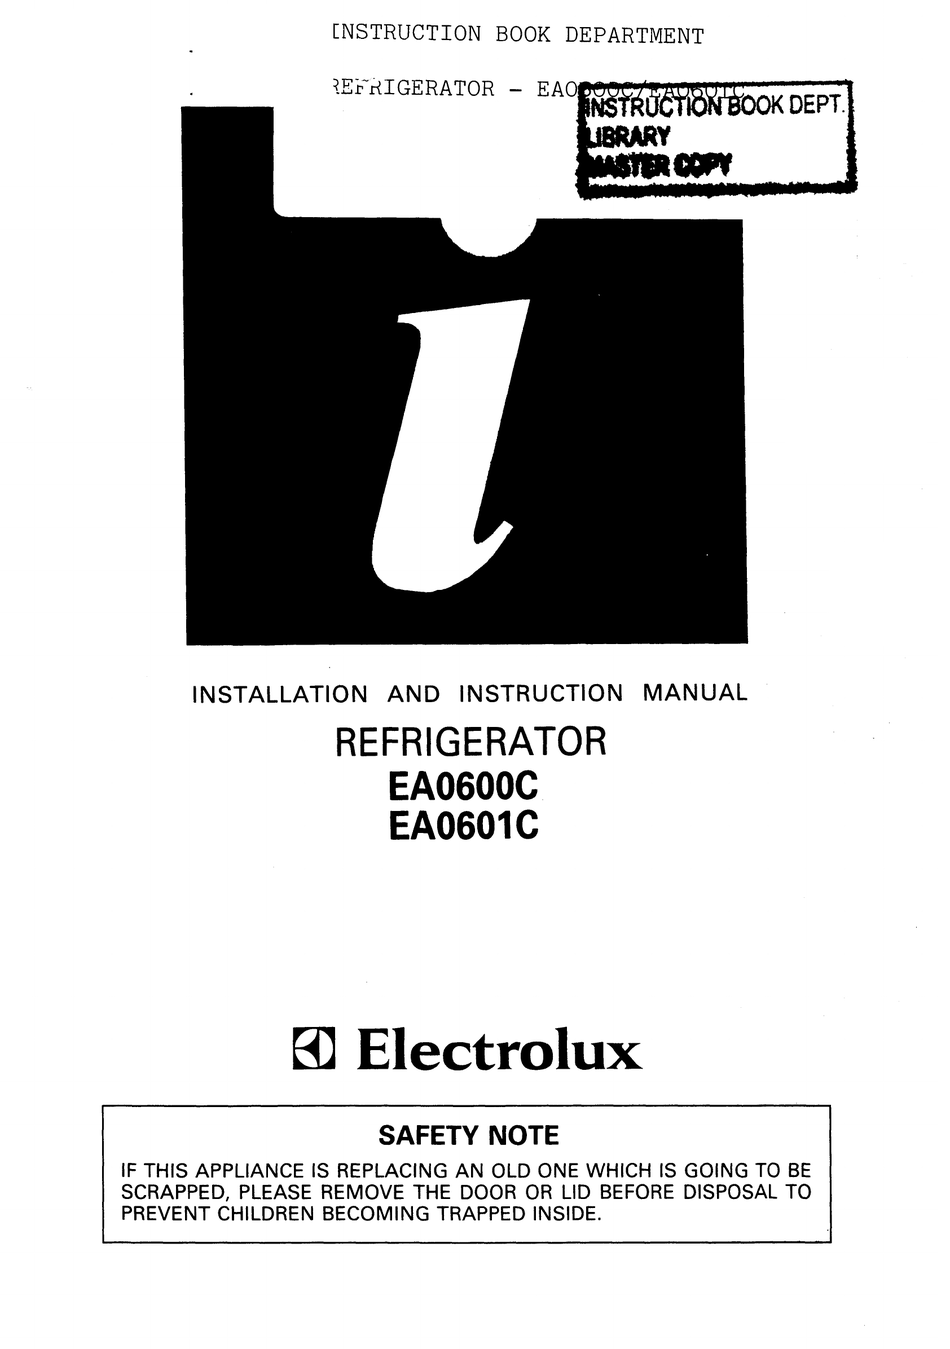 ELECTROLUX EA0601C INSTALLATION AND INSTRUCTION MANUAL Pdf